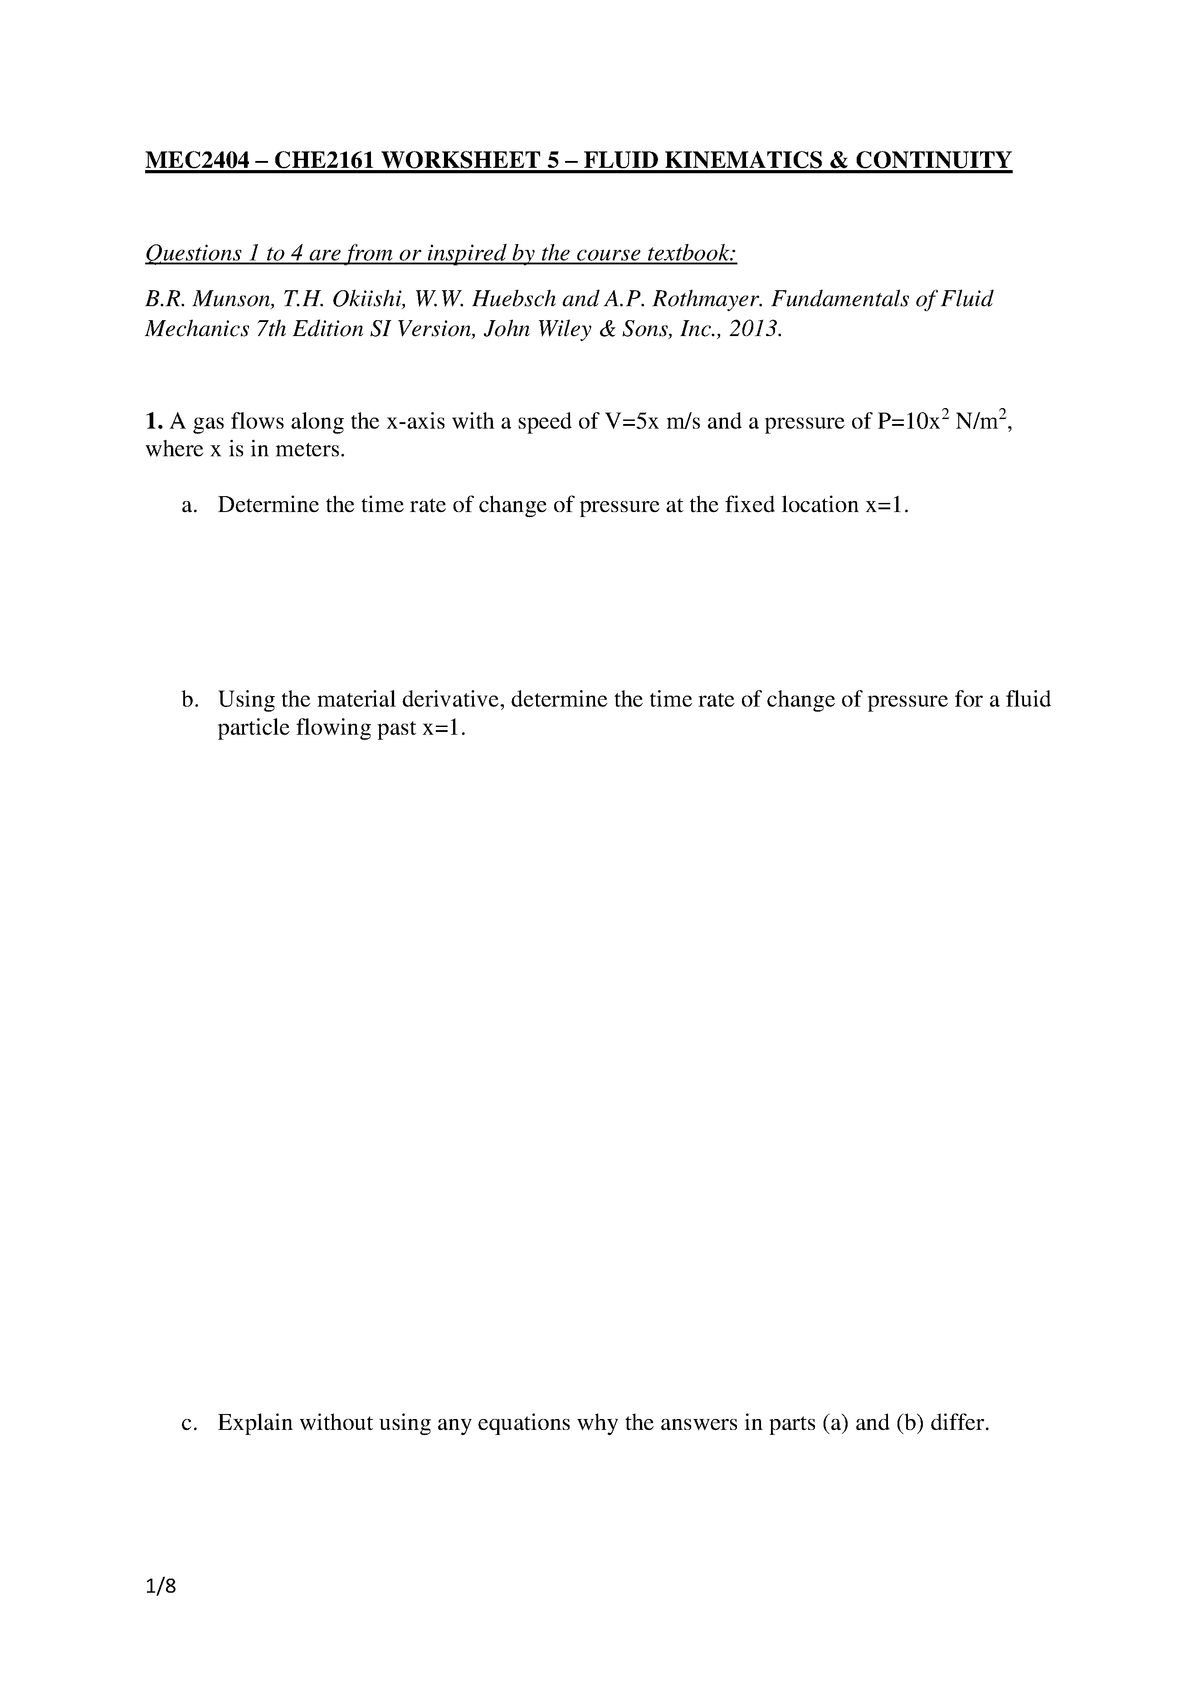 Worksheet 5 Kinematics And Continuity 24 July